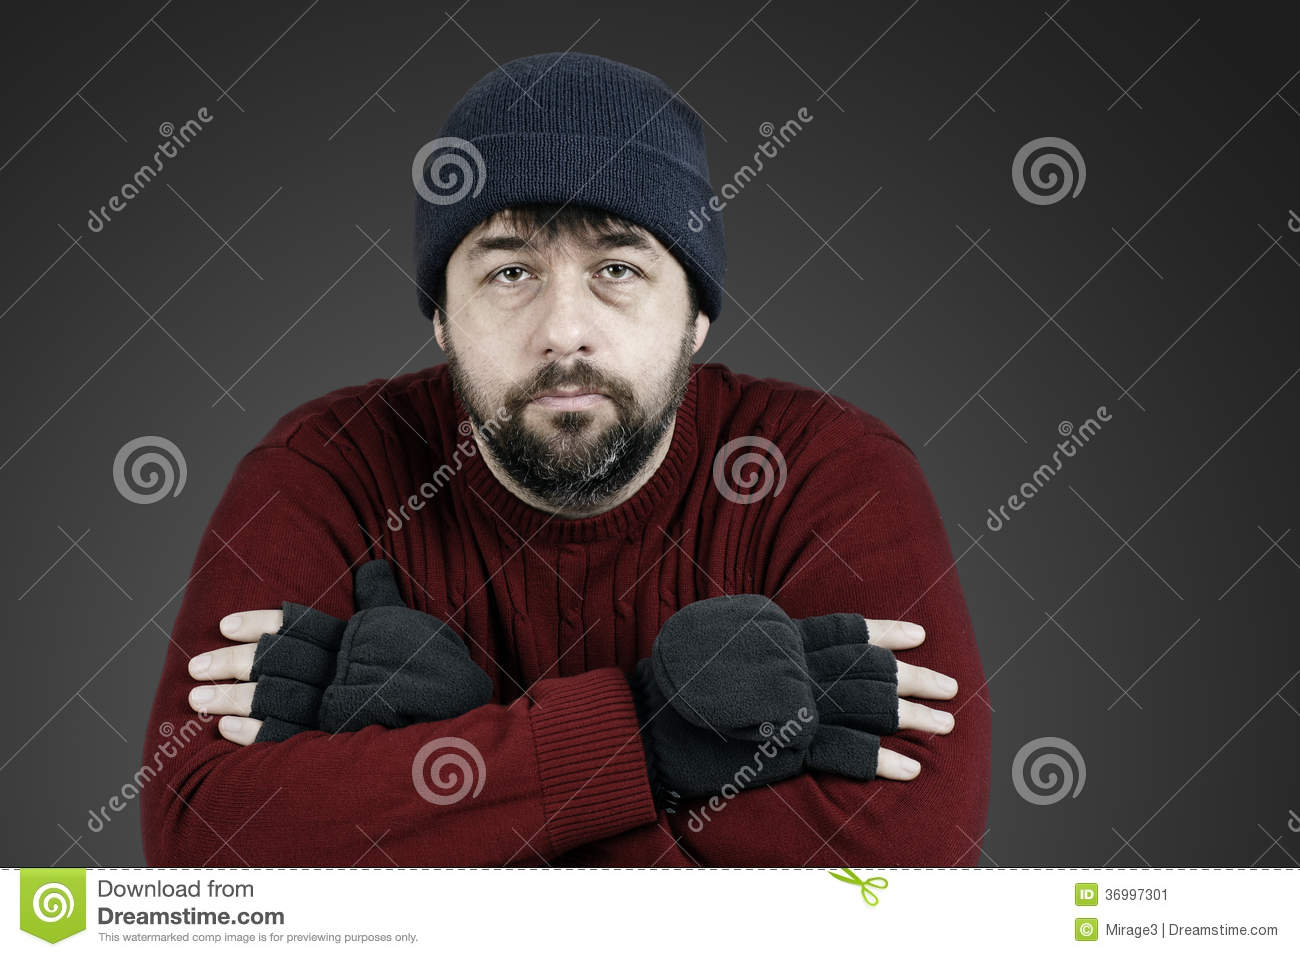 Desaturated homeless man with hat